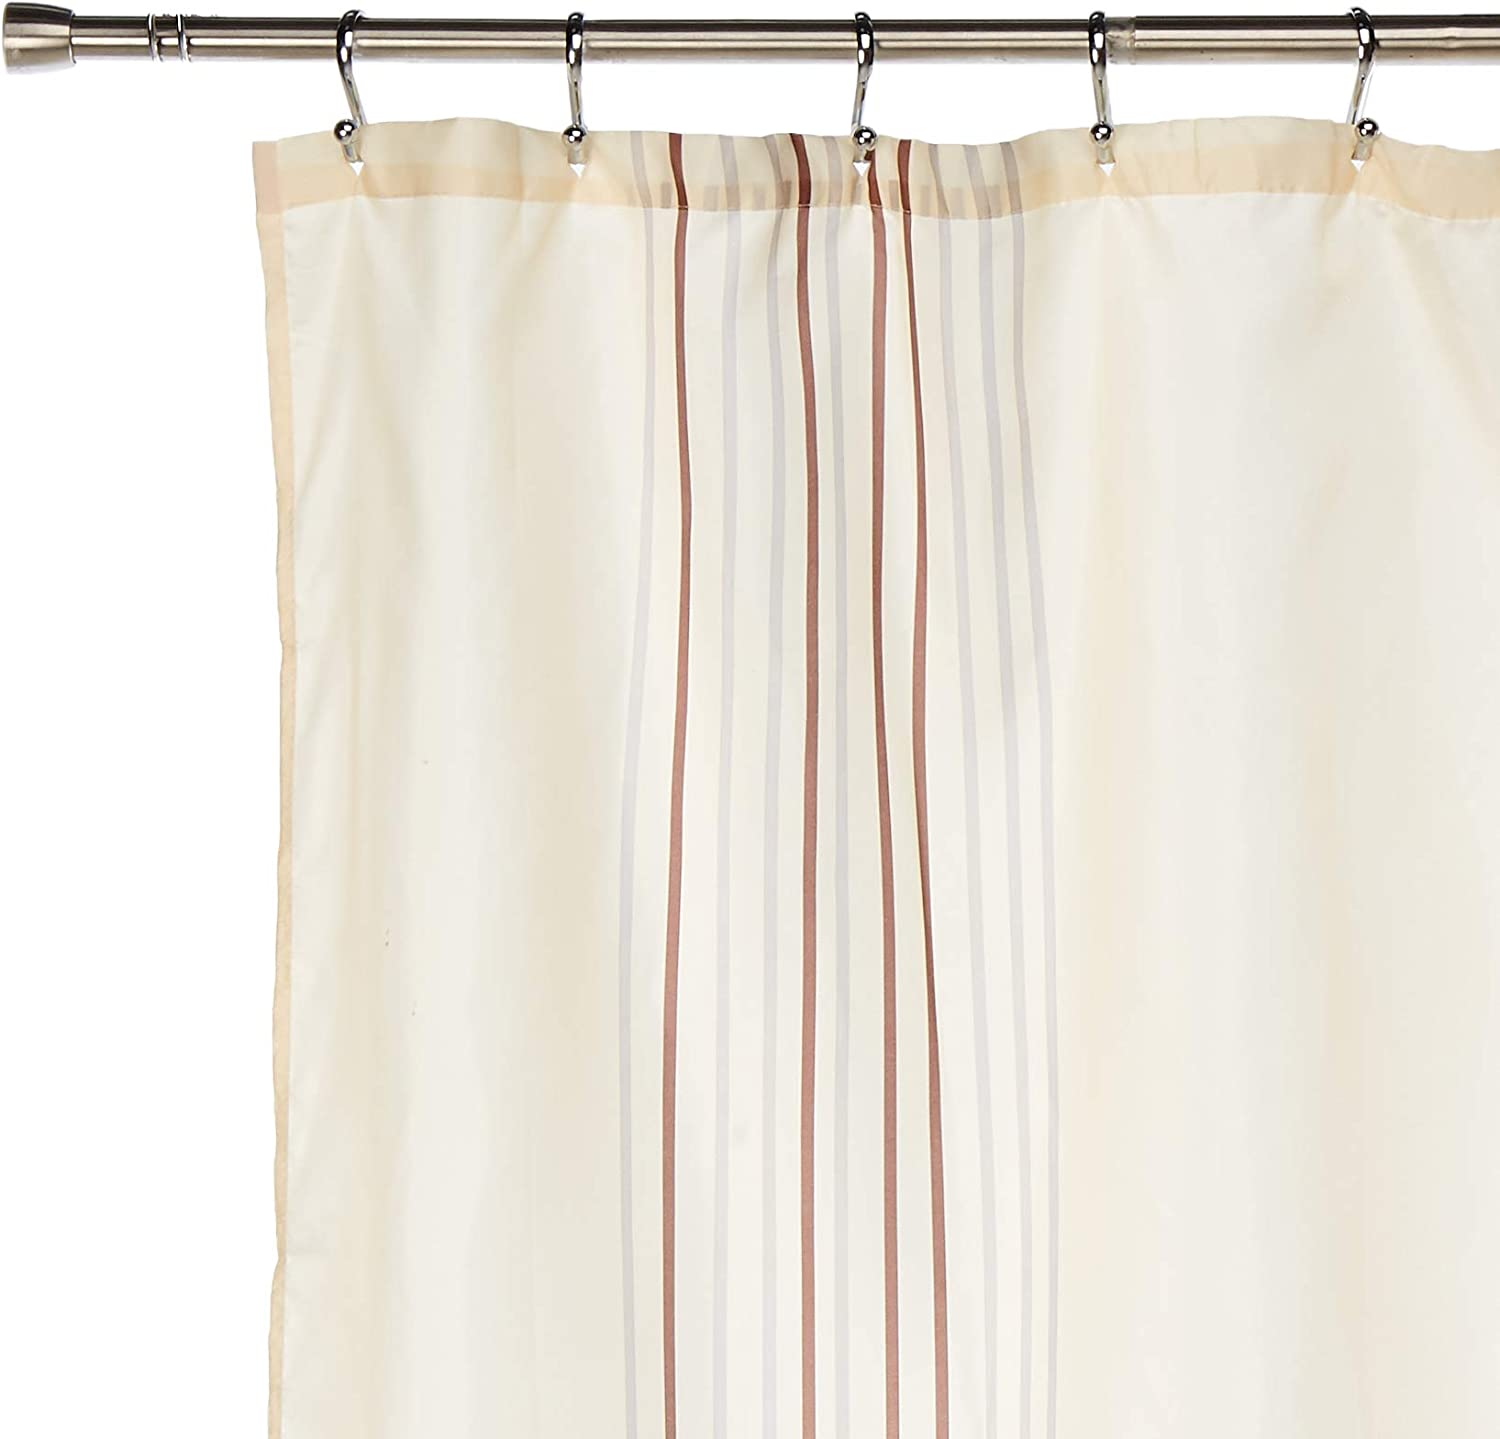 Standard Carnation Home Fashions 100-Percent Polyester Fabric Print 70 by 72-Inch Shower Curtain Isabella Multi Color